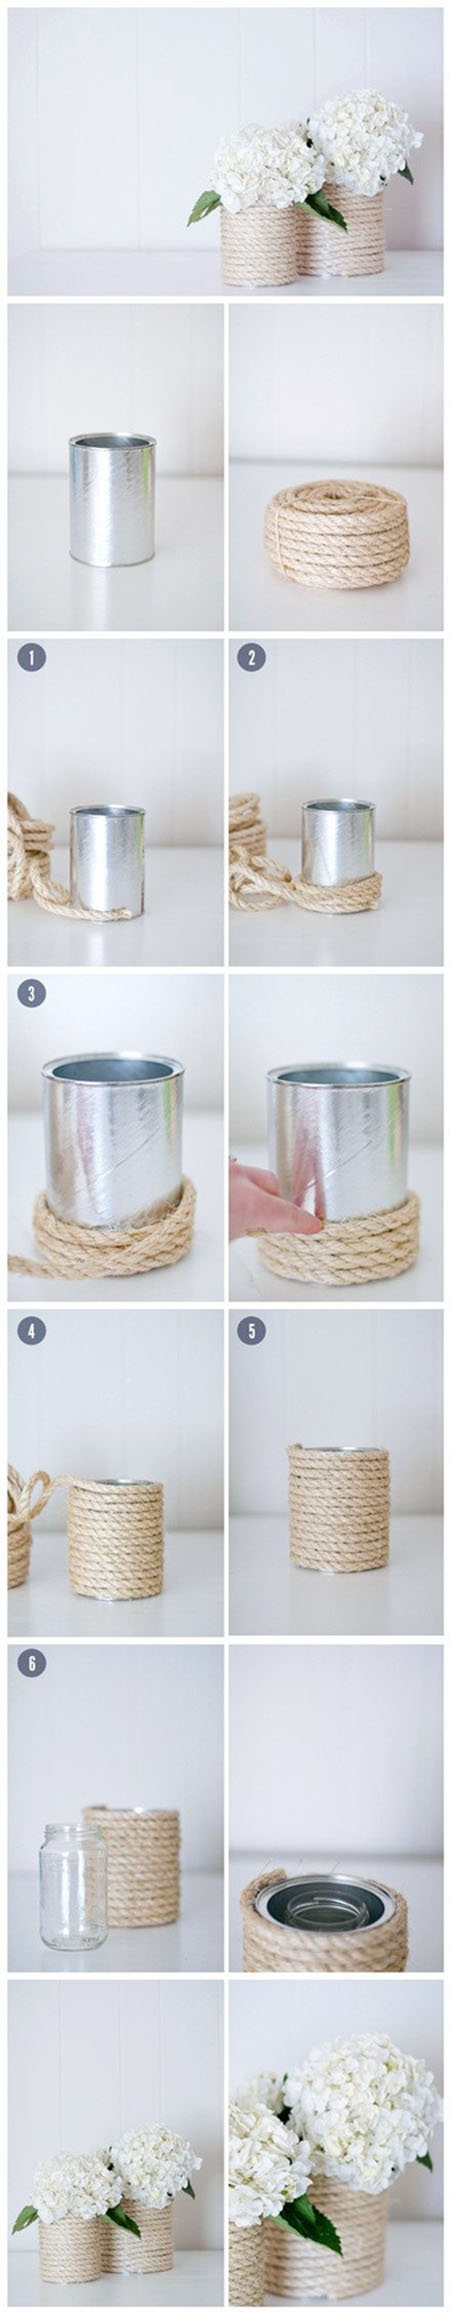 3 Rope covered coffee cans255222f4e